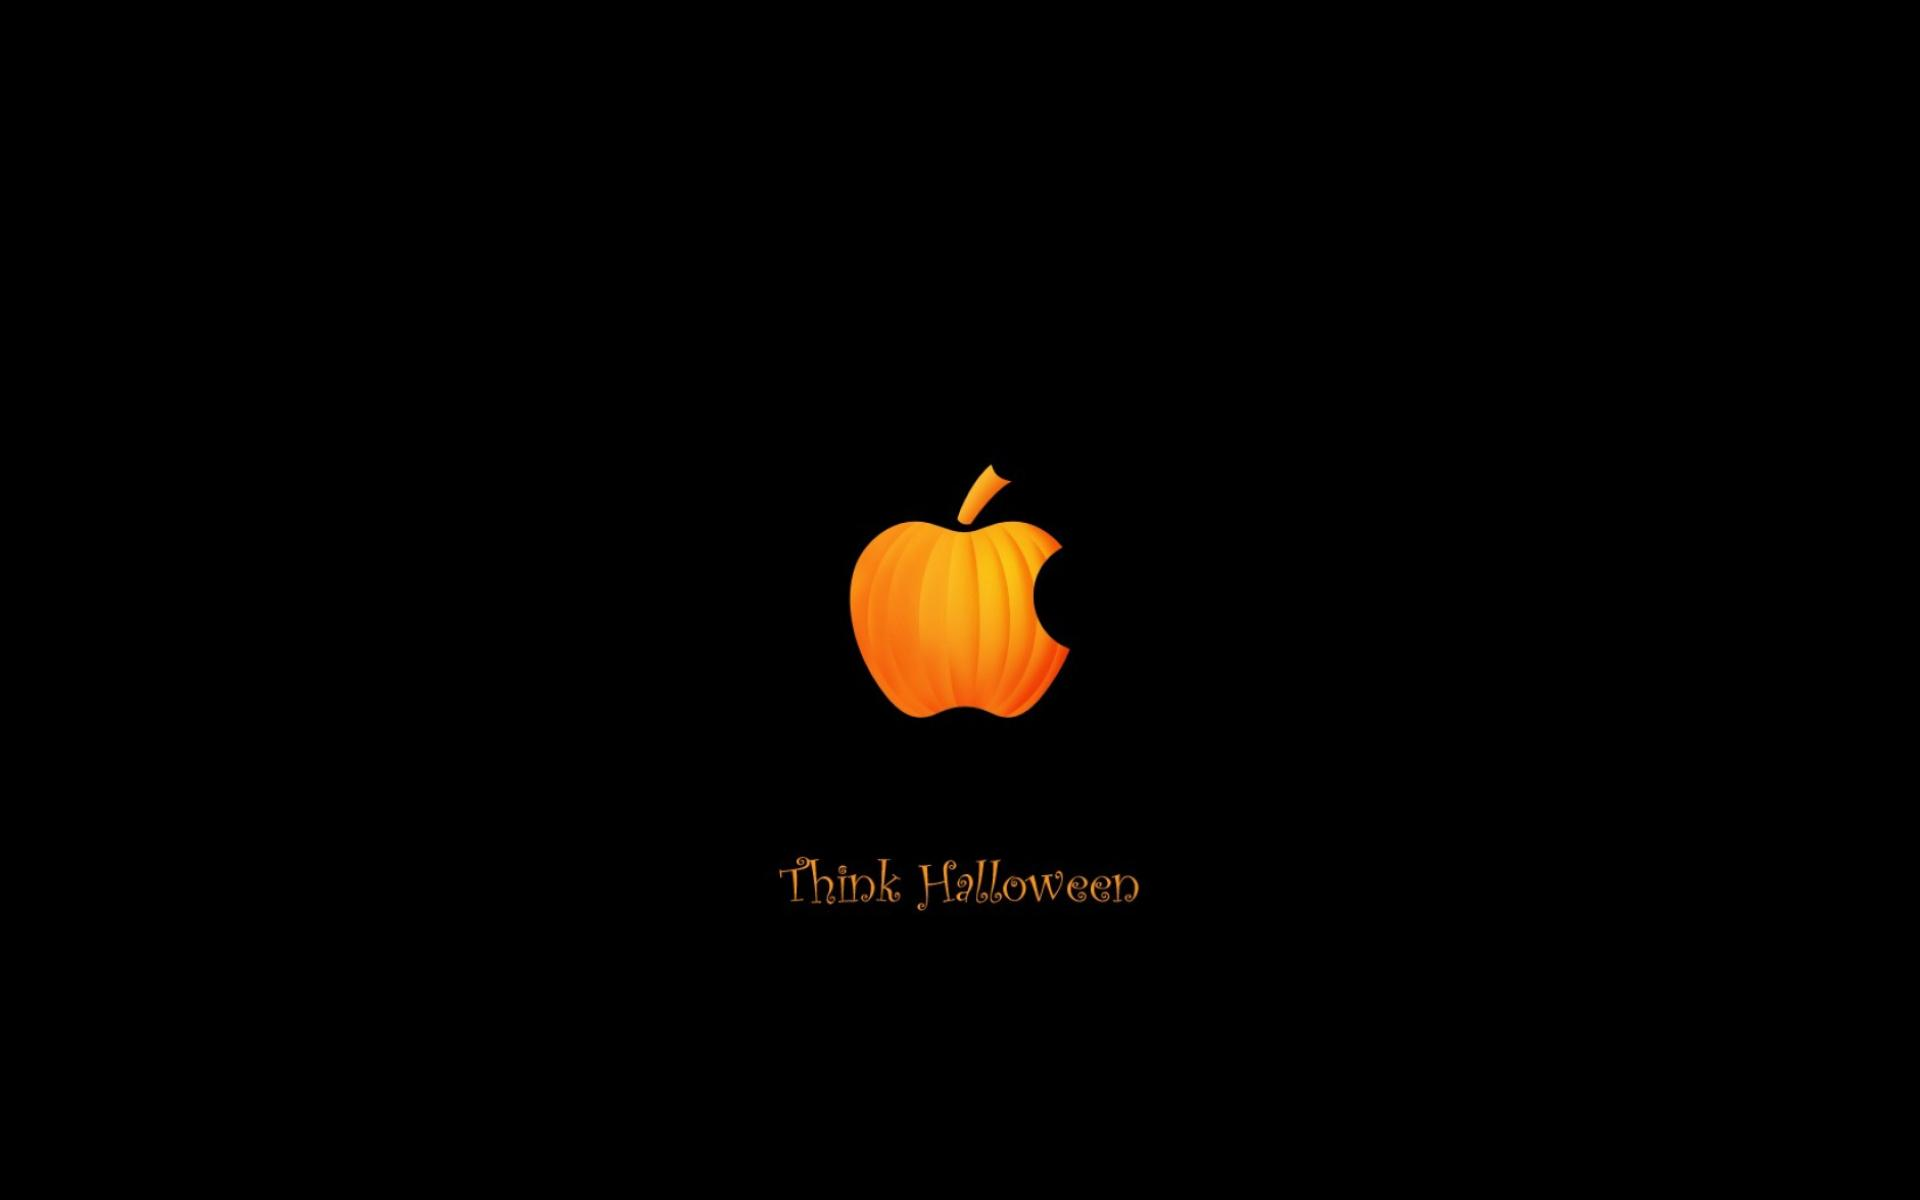 Обои Apple Halloween 1920x1200